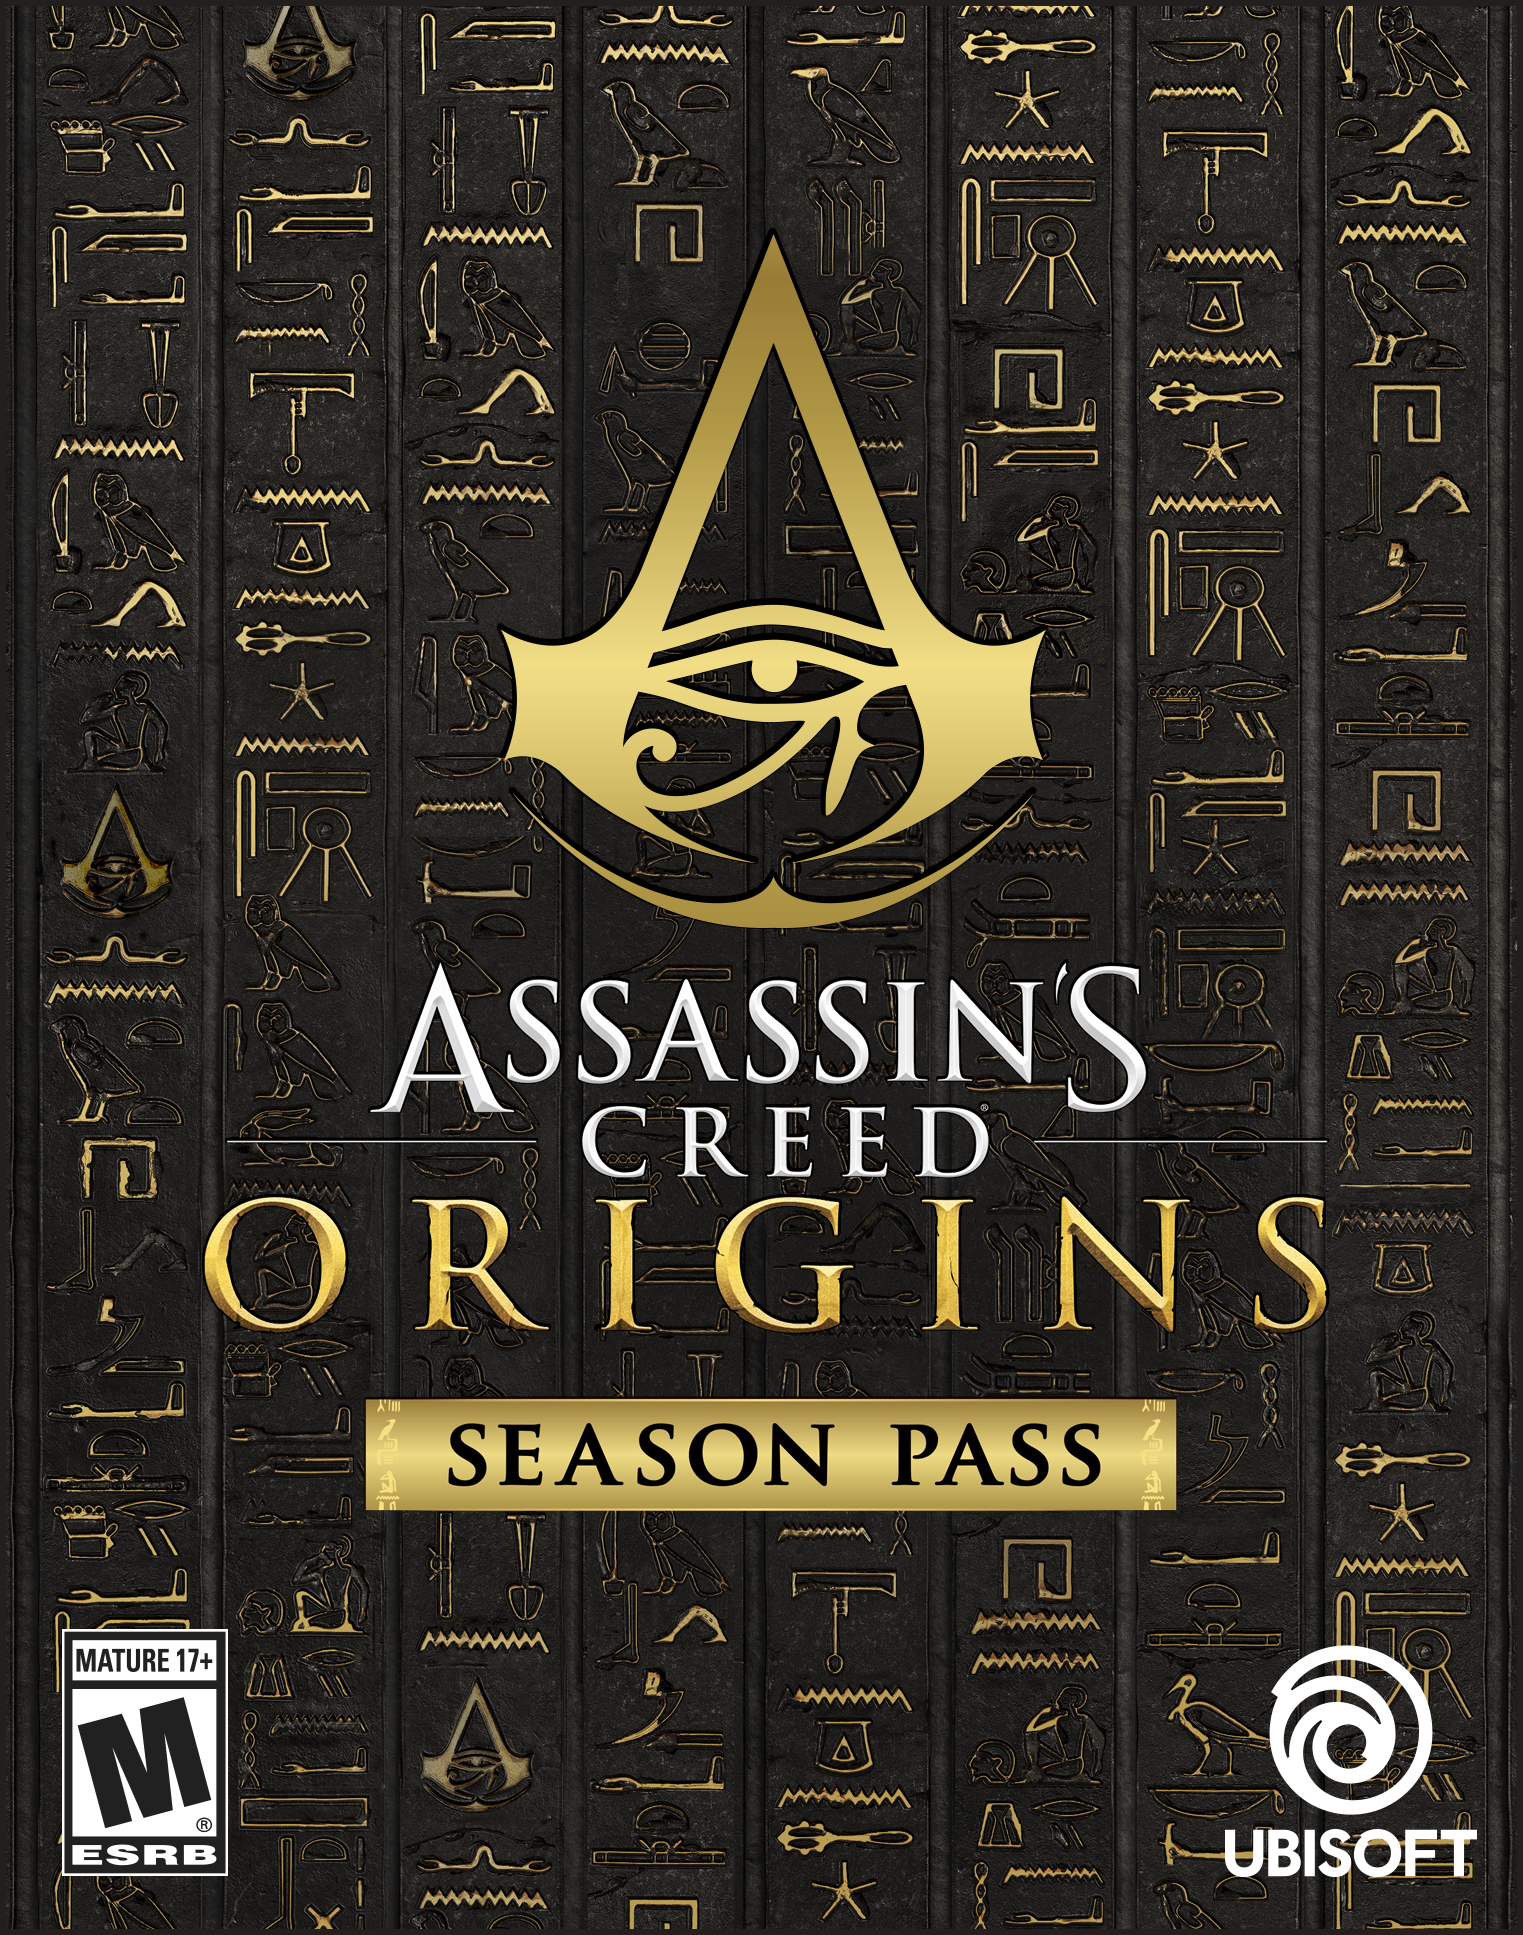 Assassin's Creed Origins - Season Pass [PC Code - Uplay] - Mystische Mumie